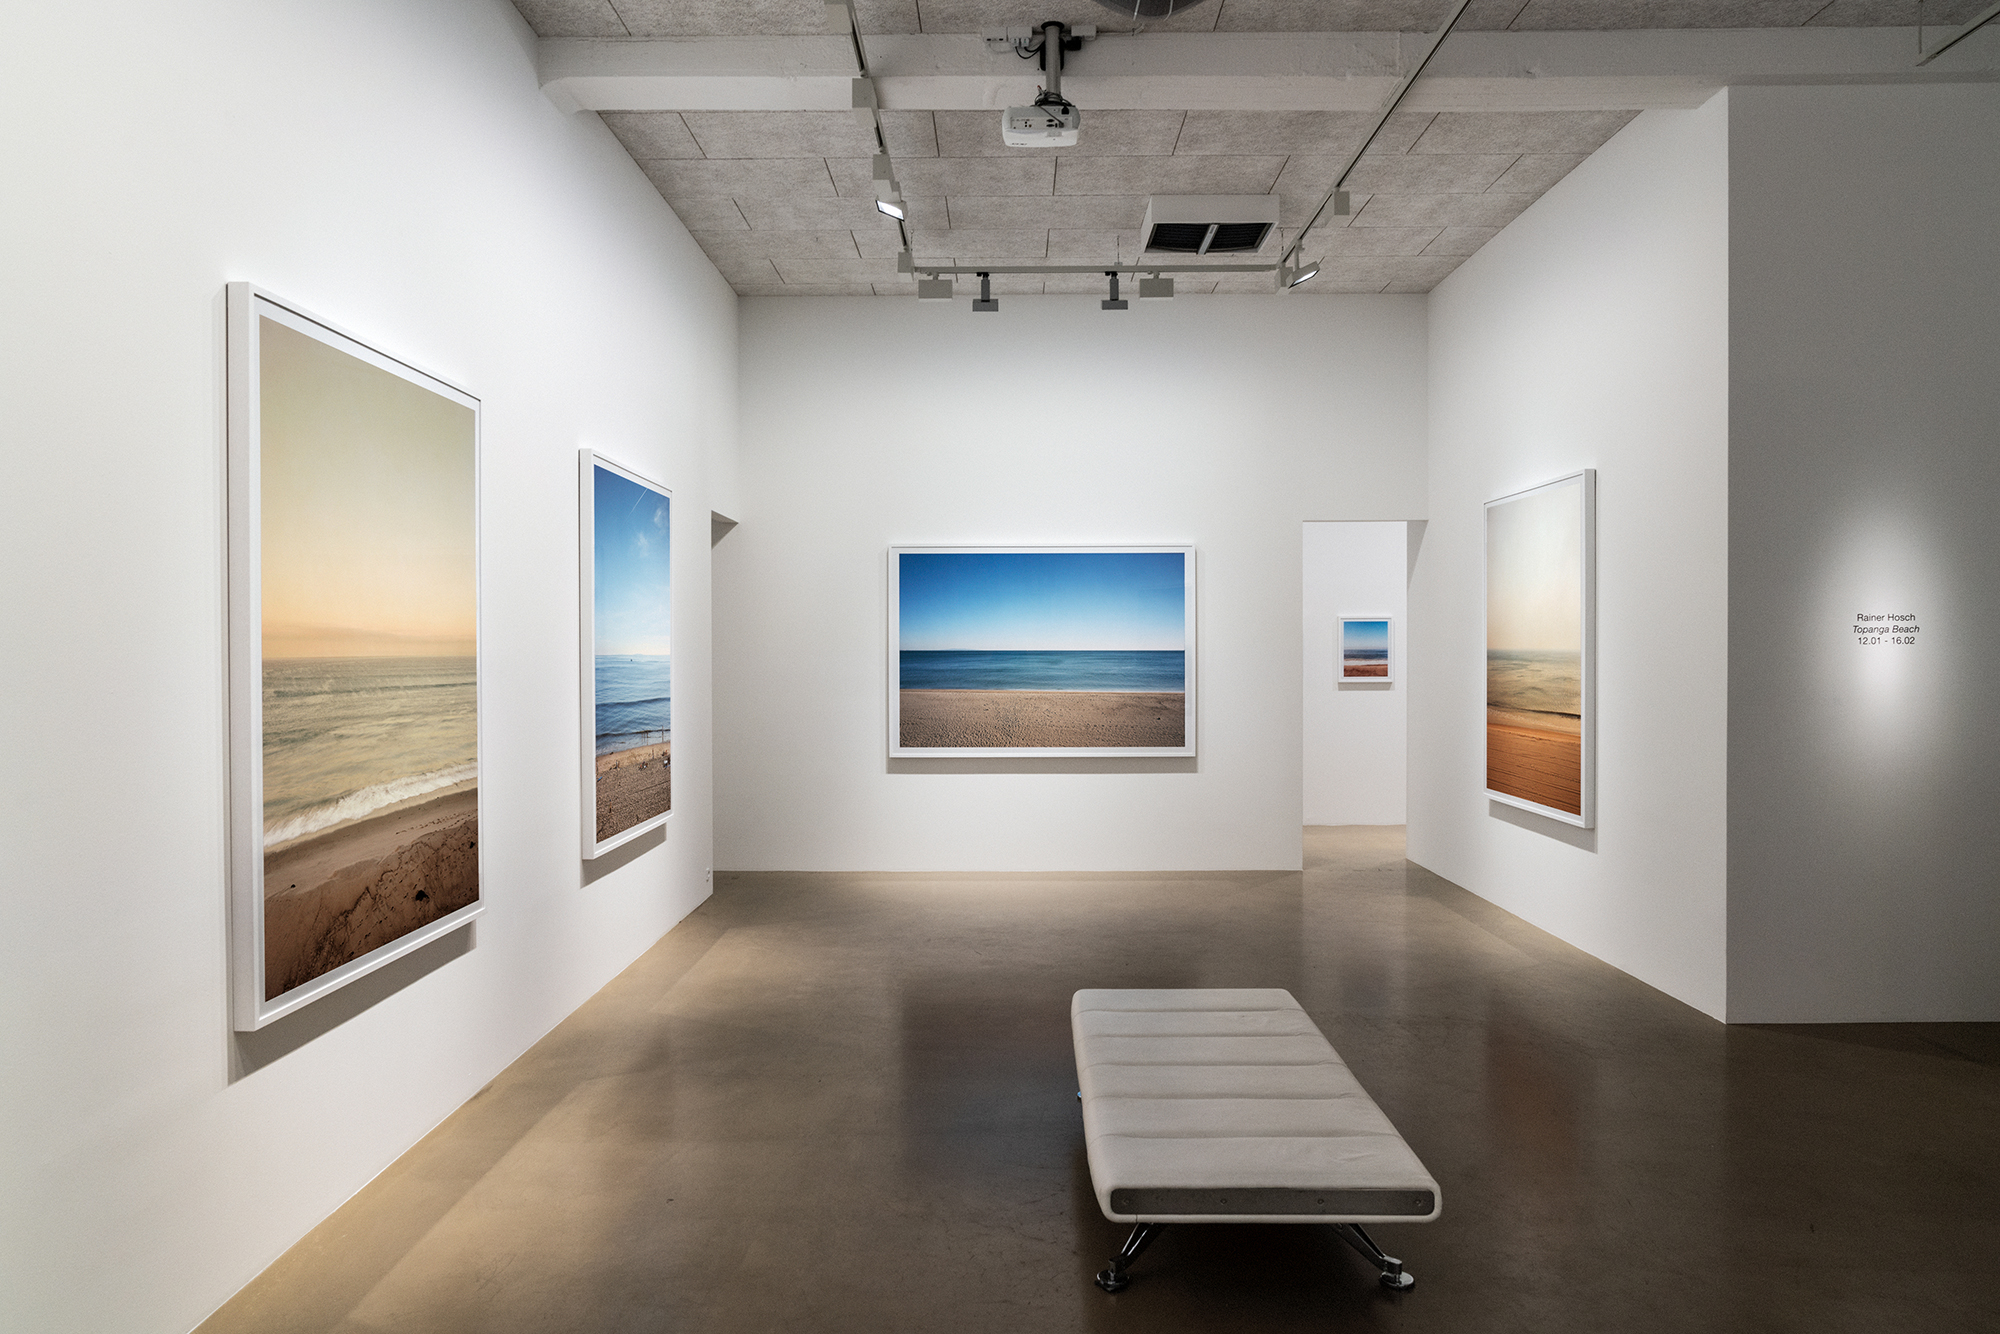 RH_TOPANGA_BEACH_GALLERY_POUSLEN_2019_7_FINAL